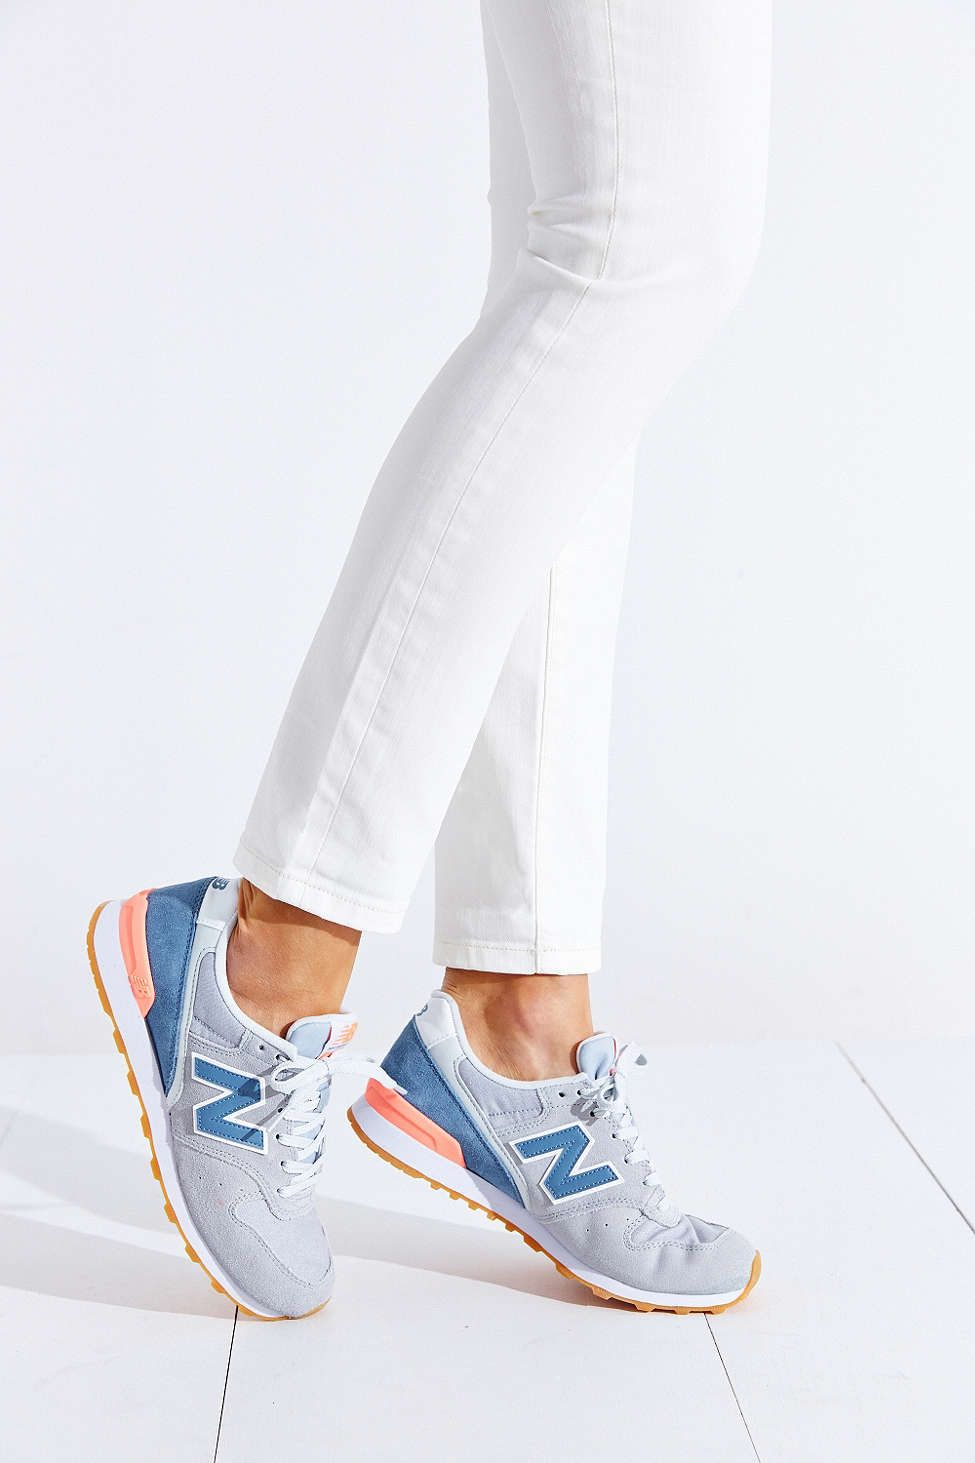 new balance 696 women s. new balance 696 capsule running sneaker - urban outfitters women s a